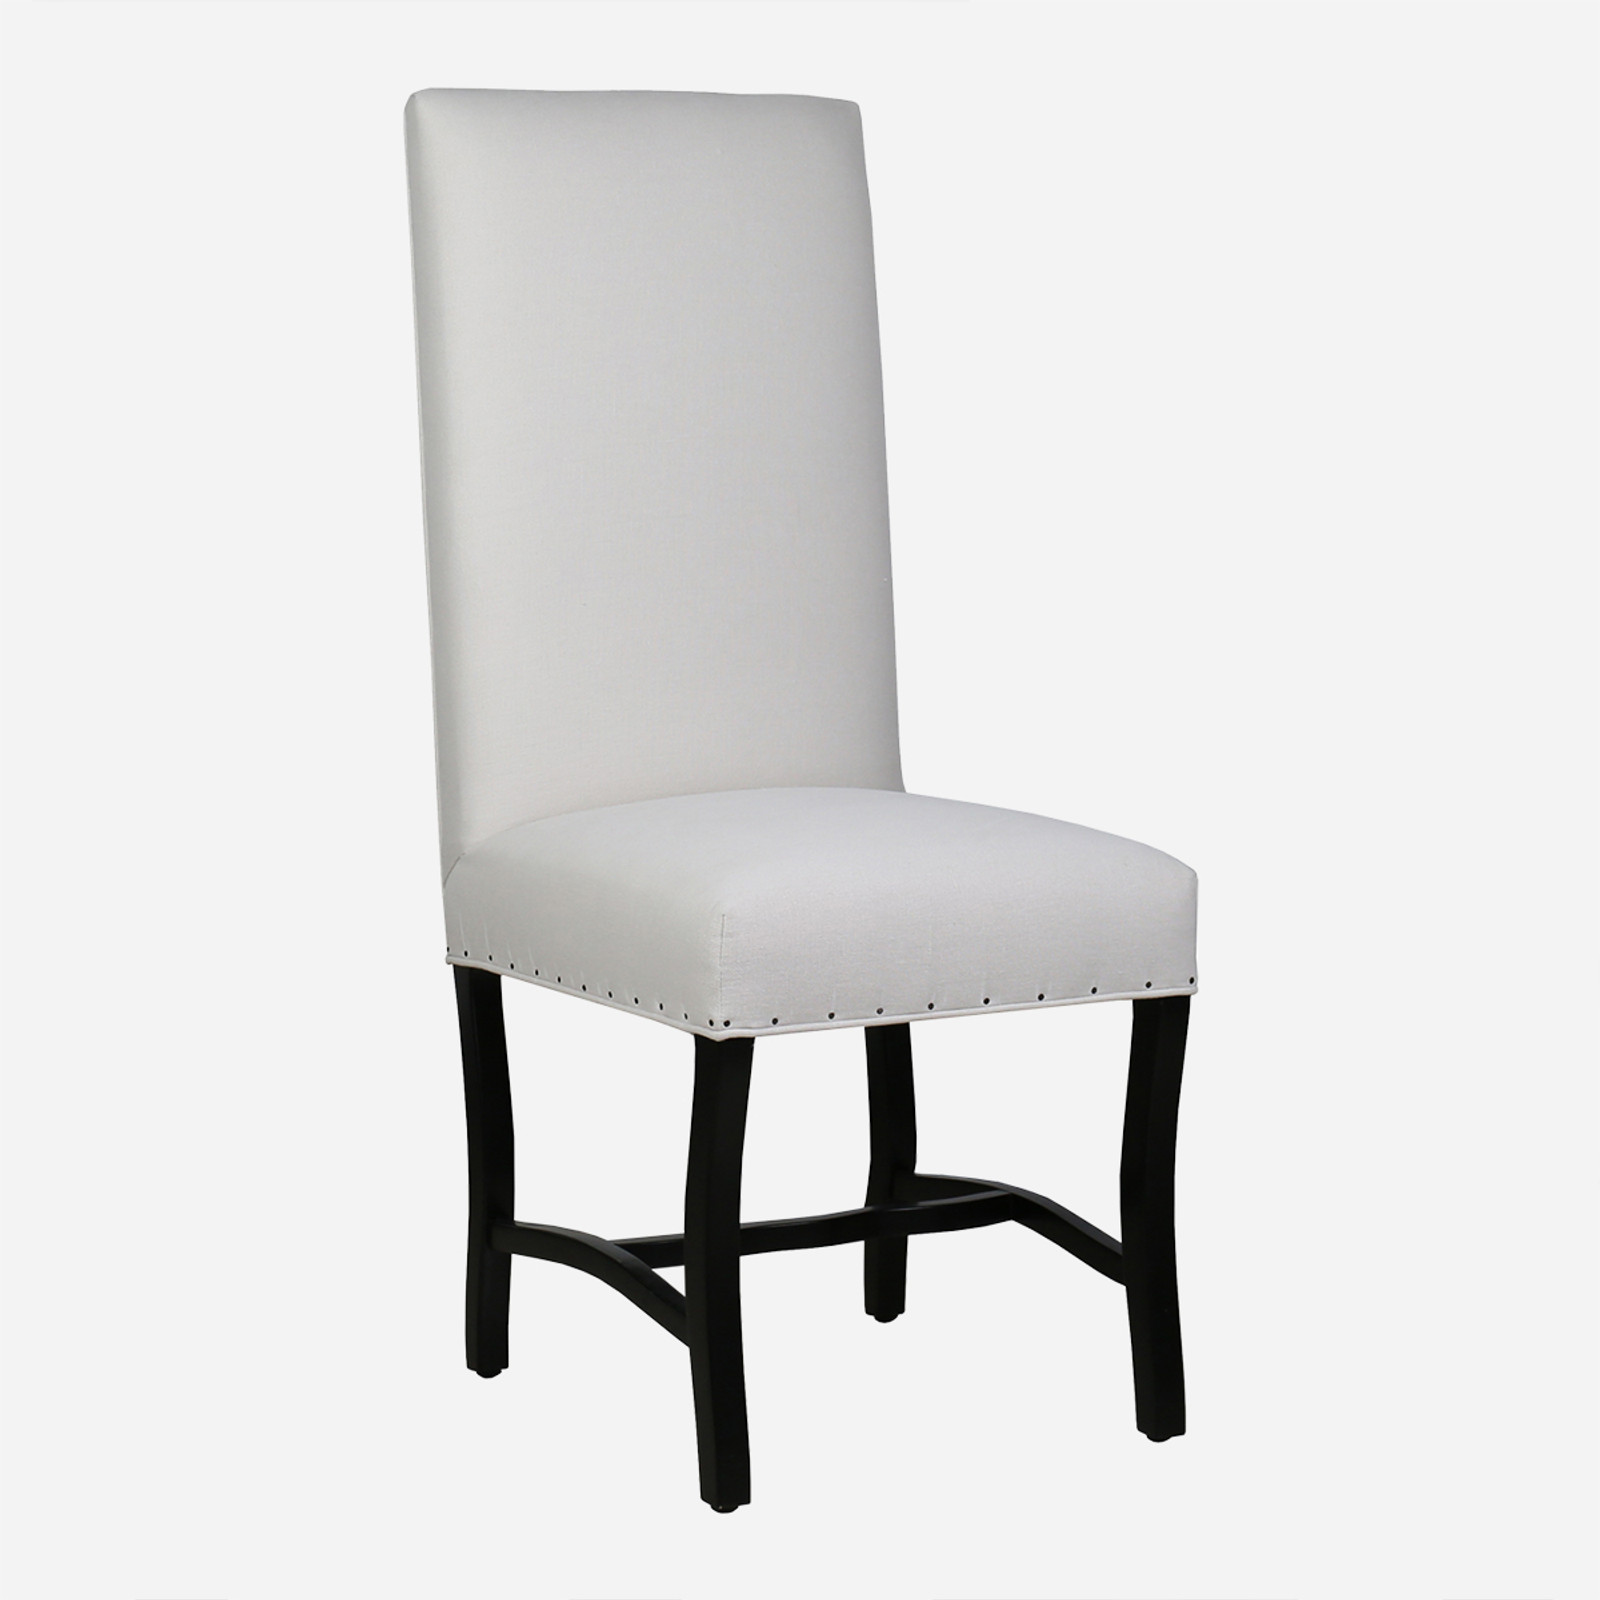 Charles V Dining Chair